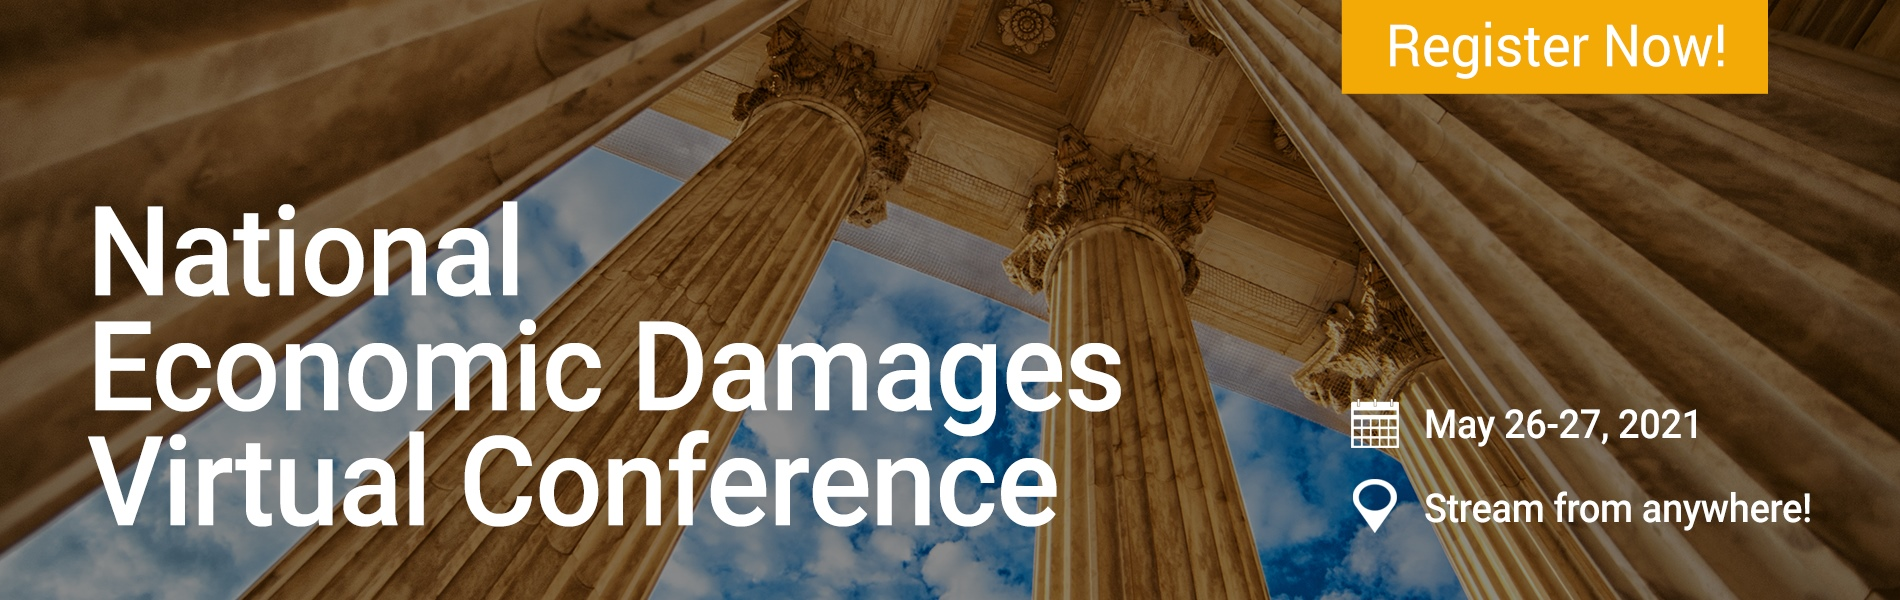 National Economic Damages Virtual Conference 2021